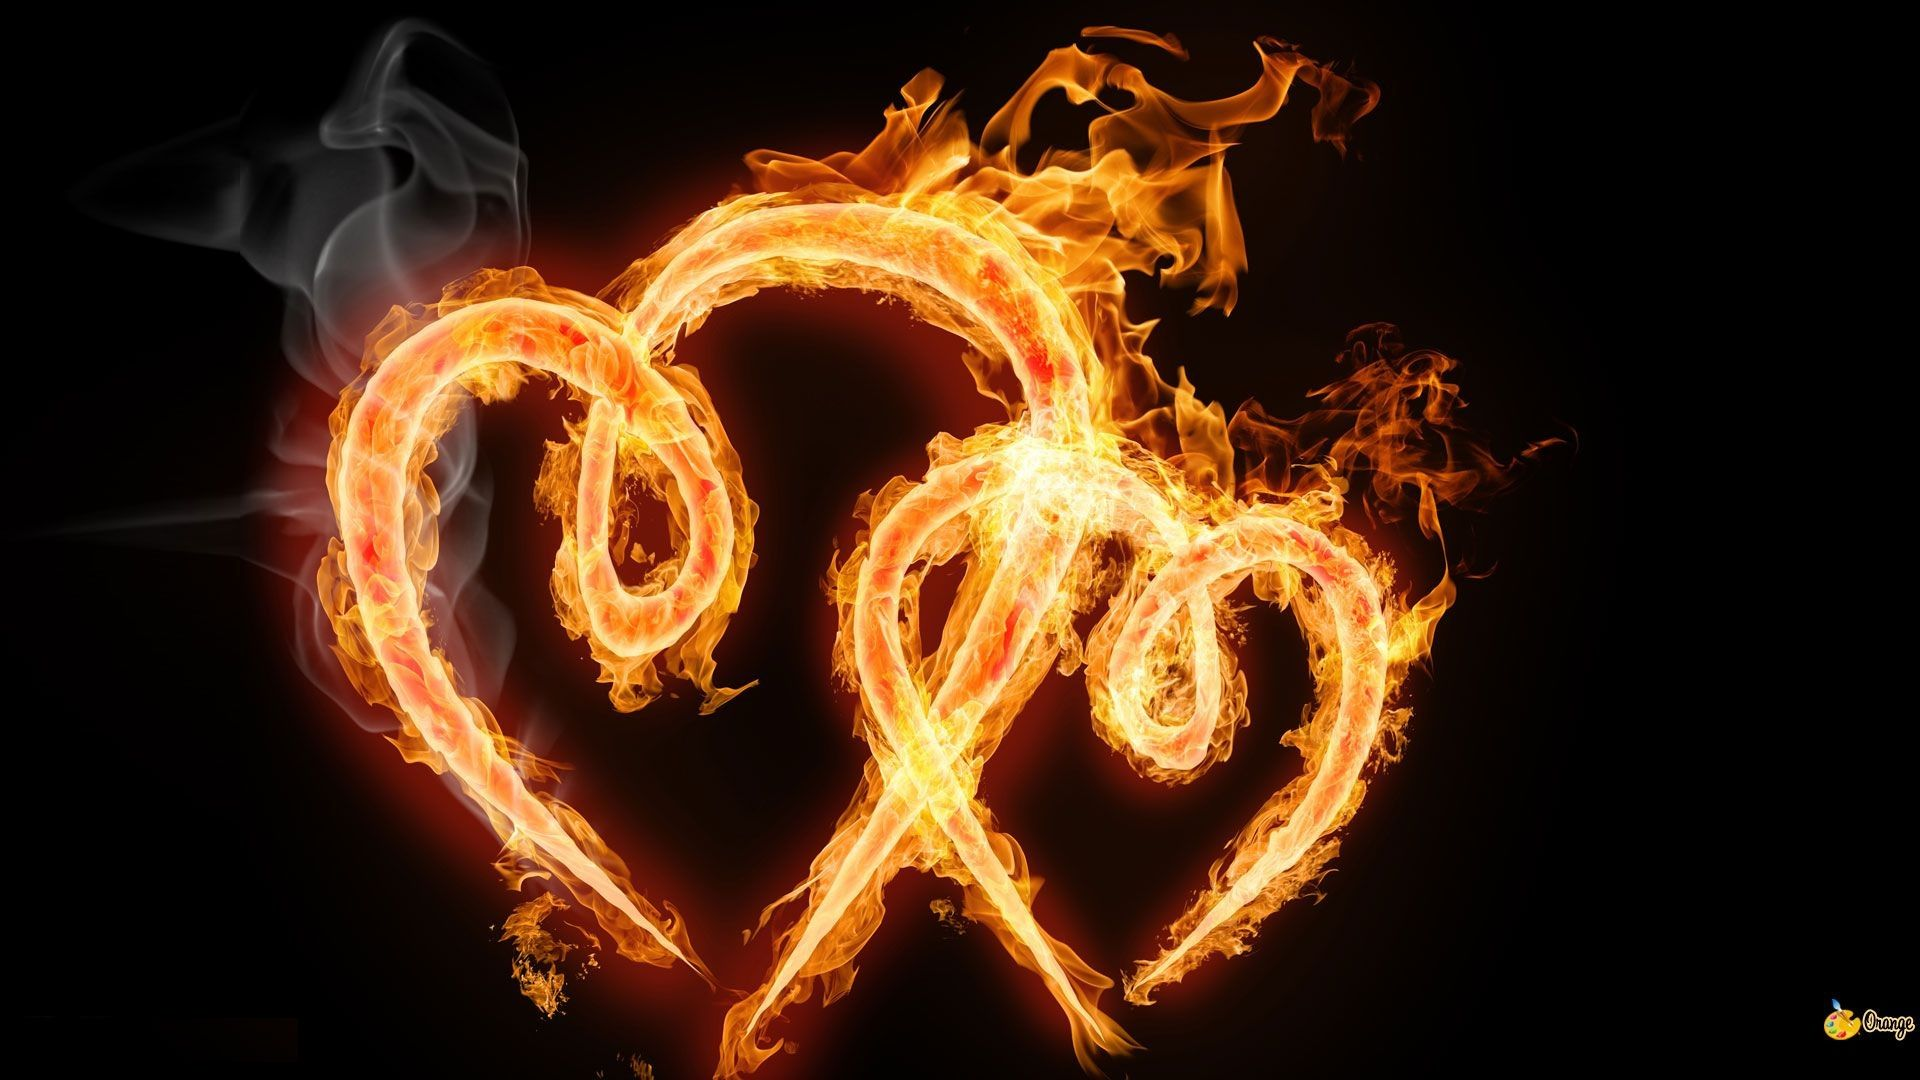 Images of hearts on fire hd wallpaper unique nature wallpapers images of hearts on fire hd wallpaper unique nature wallpapers voltagebd Gallery